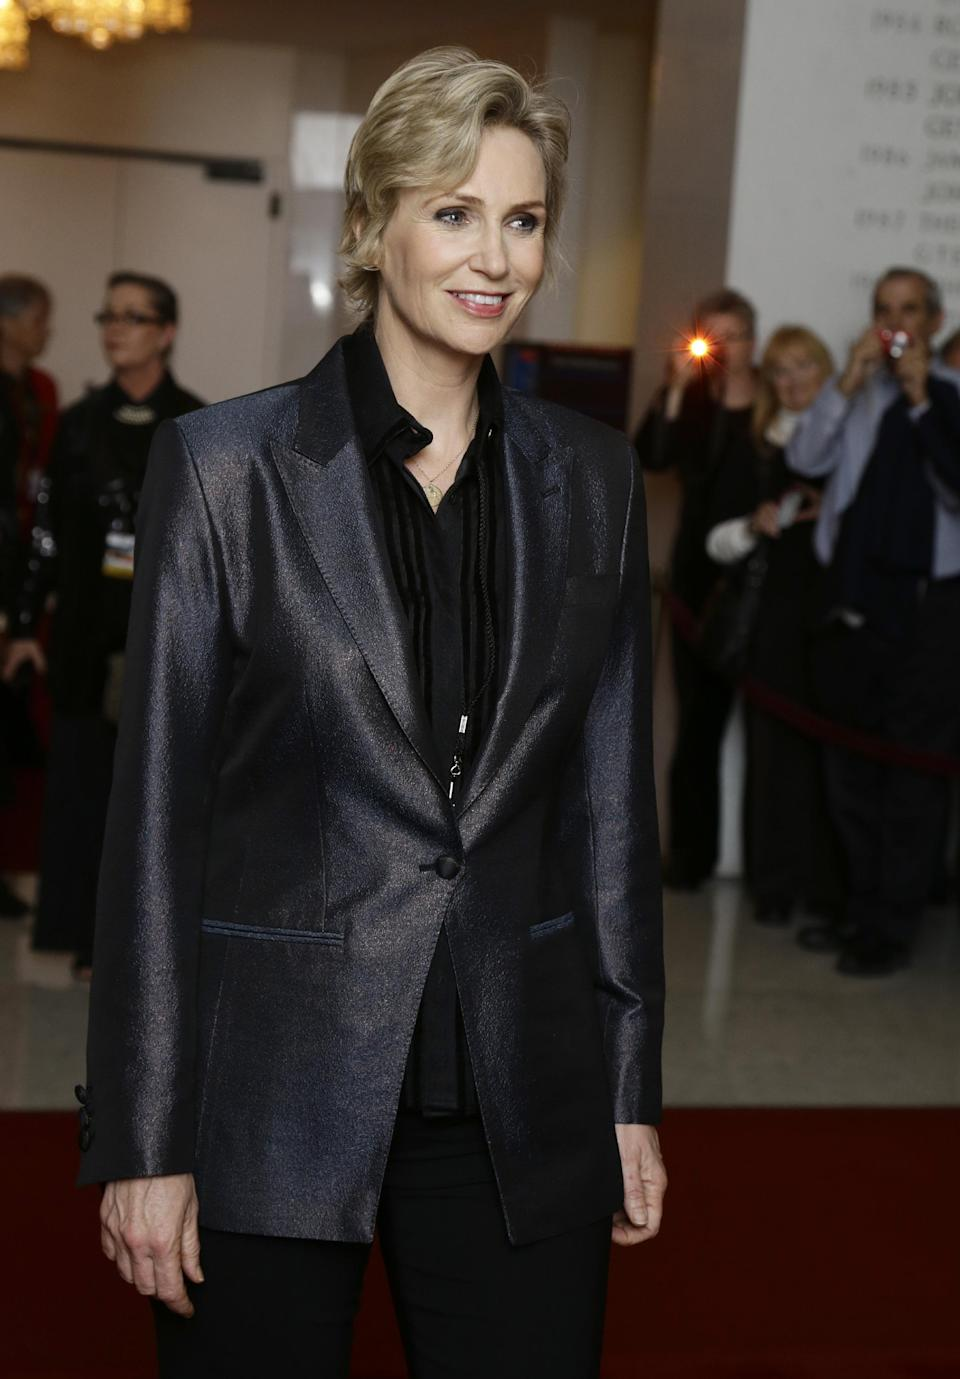 Actress Jane Lynch poses for photographers on the red carpet, before entertainer Ellen DeGeneres receives the 15th annual Mark Twain Prize for American Humor at the Kennedy Center, Monday, Oct. 22, 2012, in Washington. (AP Photo/Alex Brandon)